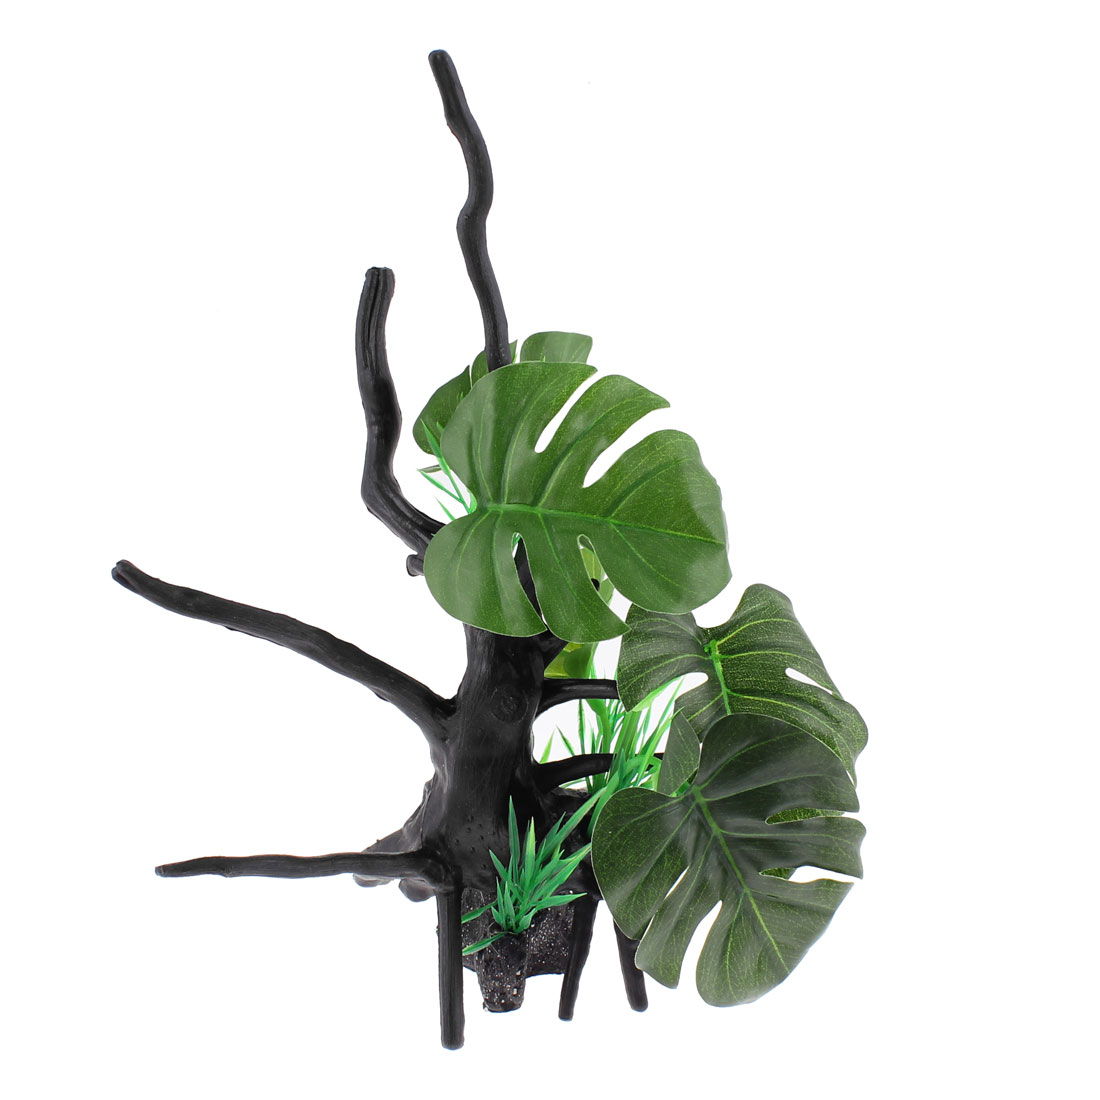 Aquarium Plastic Manmade Water Branch Tree Plant Decor 24.5cm Height